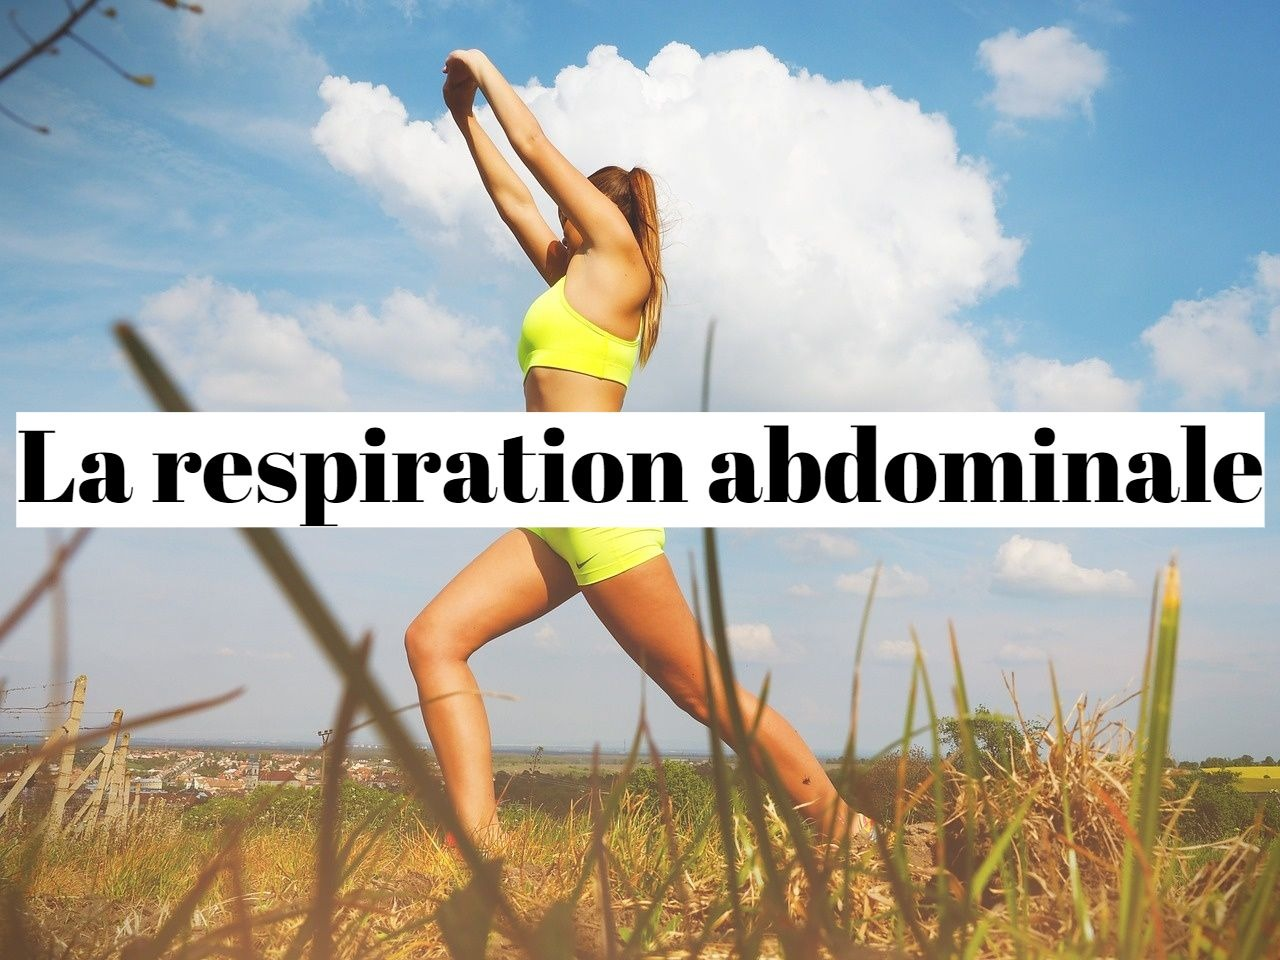 Respiration abdominale: anti-stress efficace et naturel